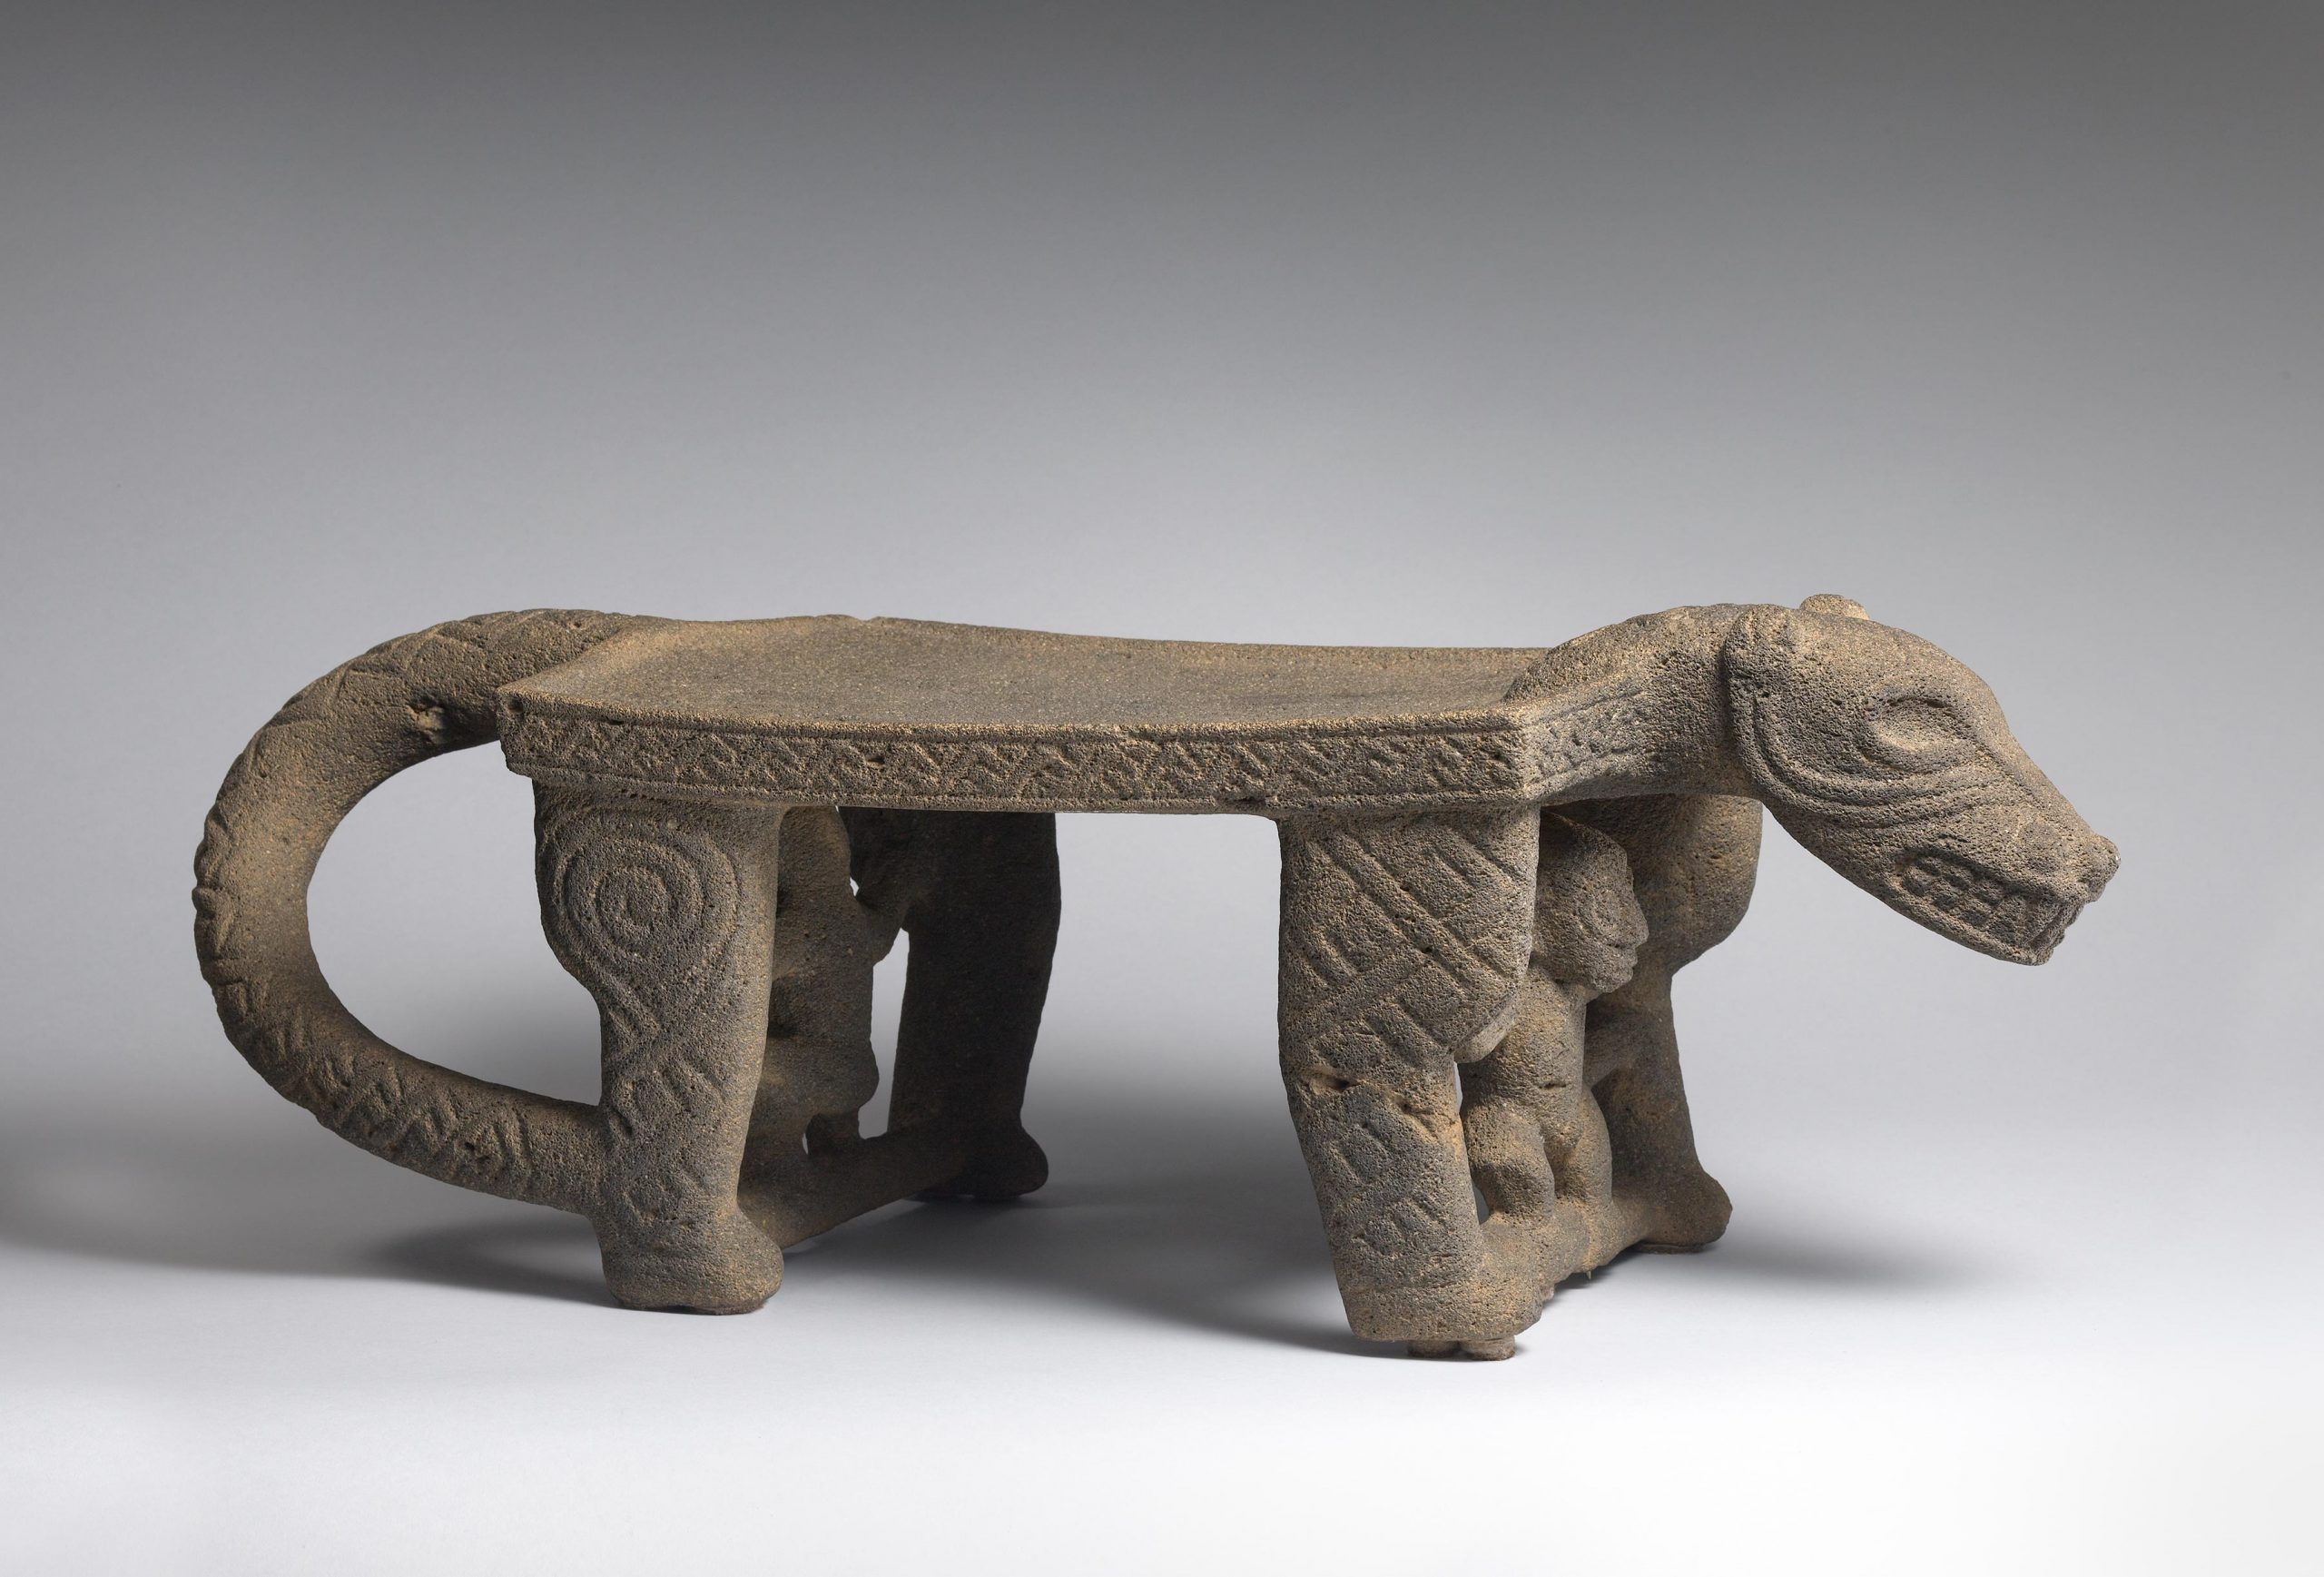 Stone metate carved in the shape of a jaguar with monkeys between its legs.